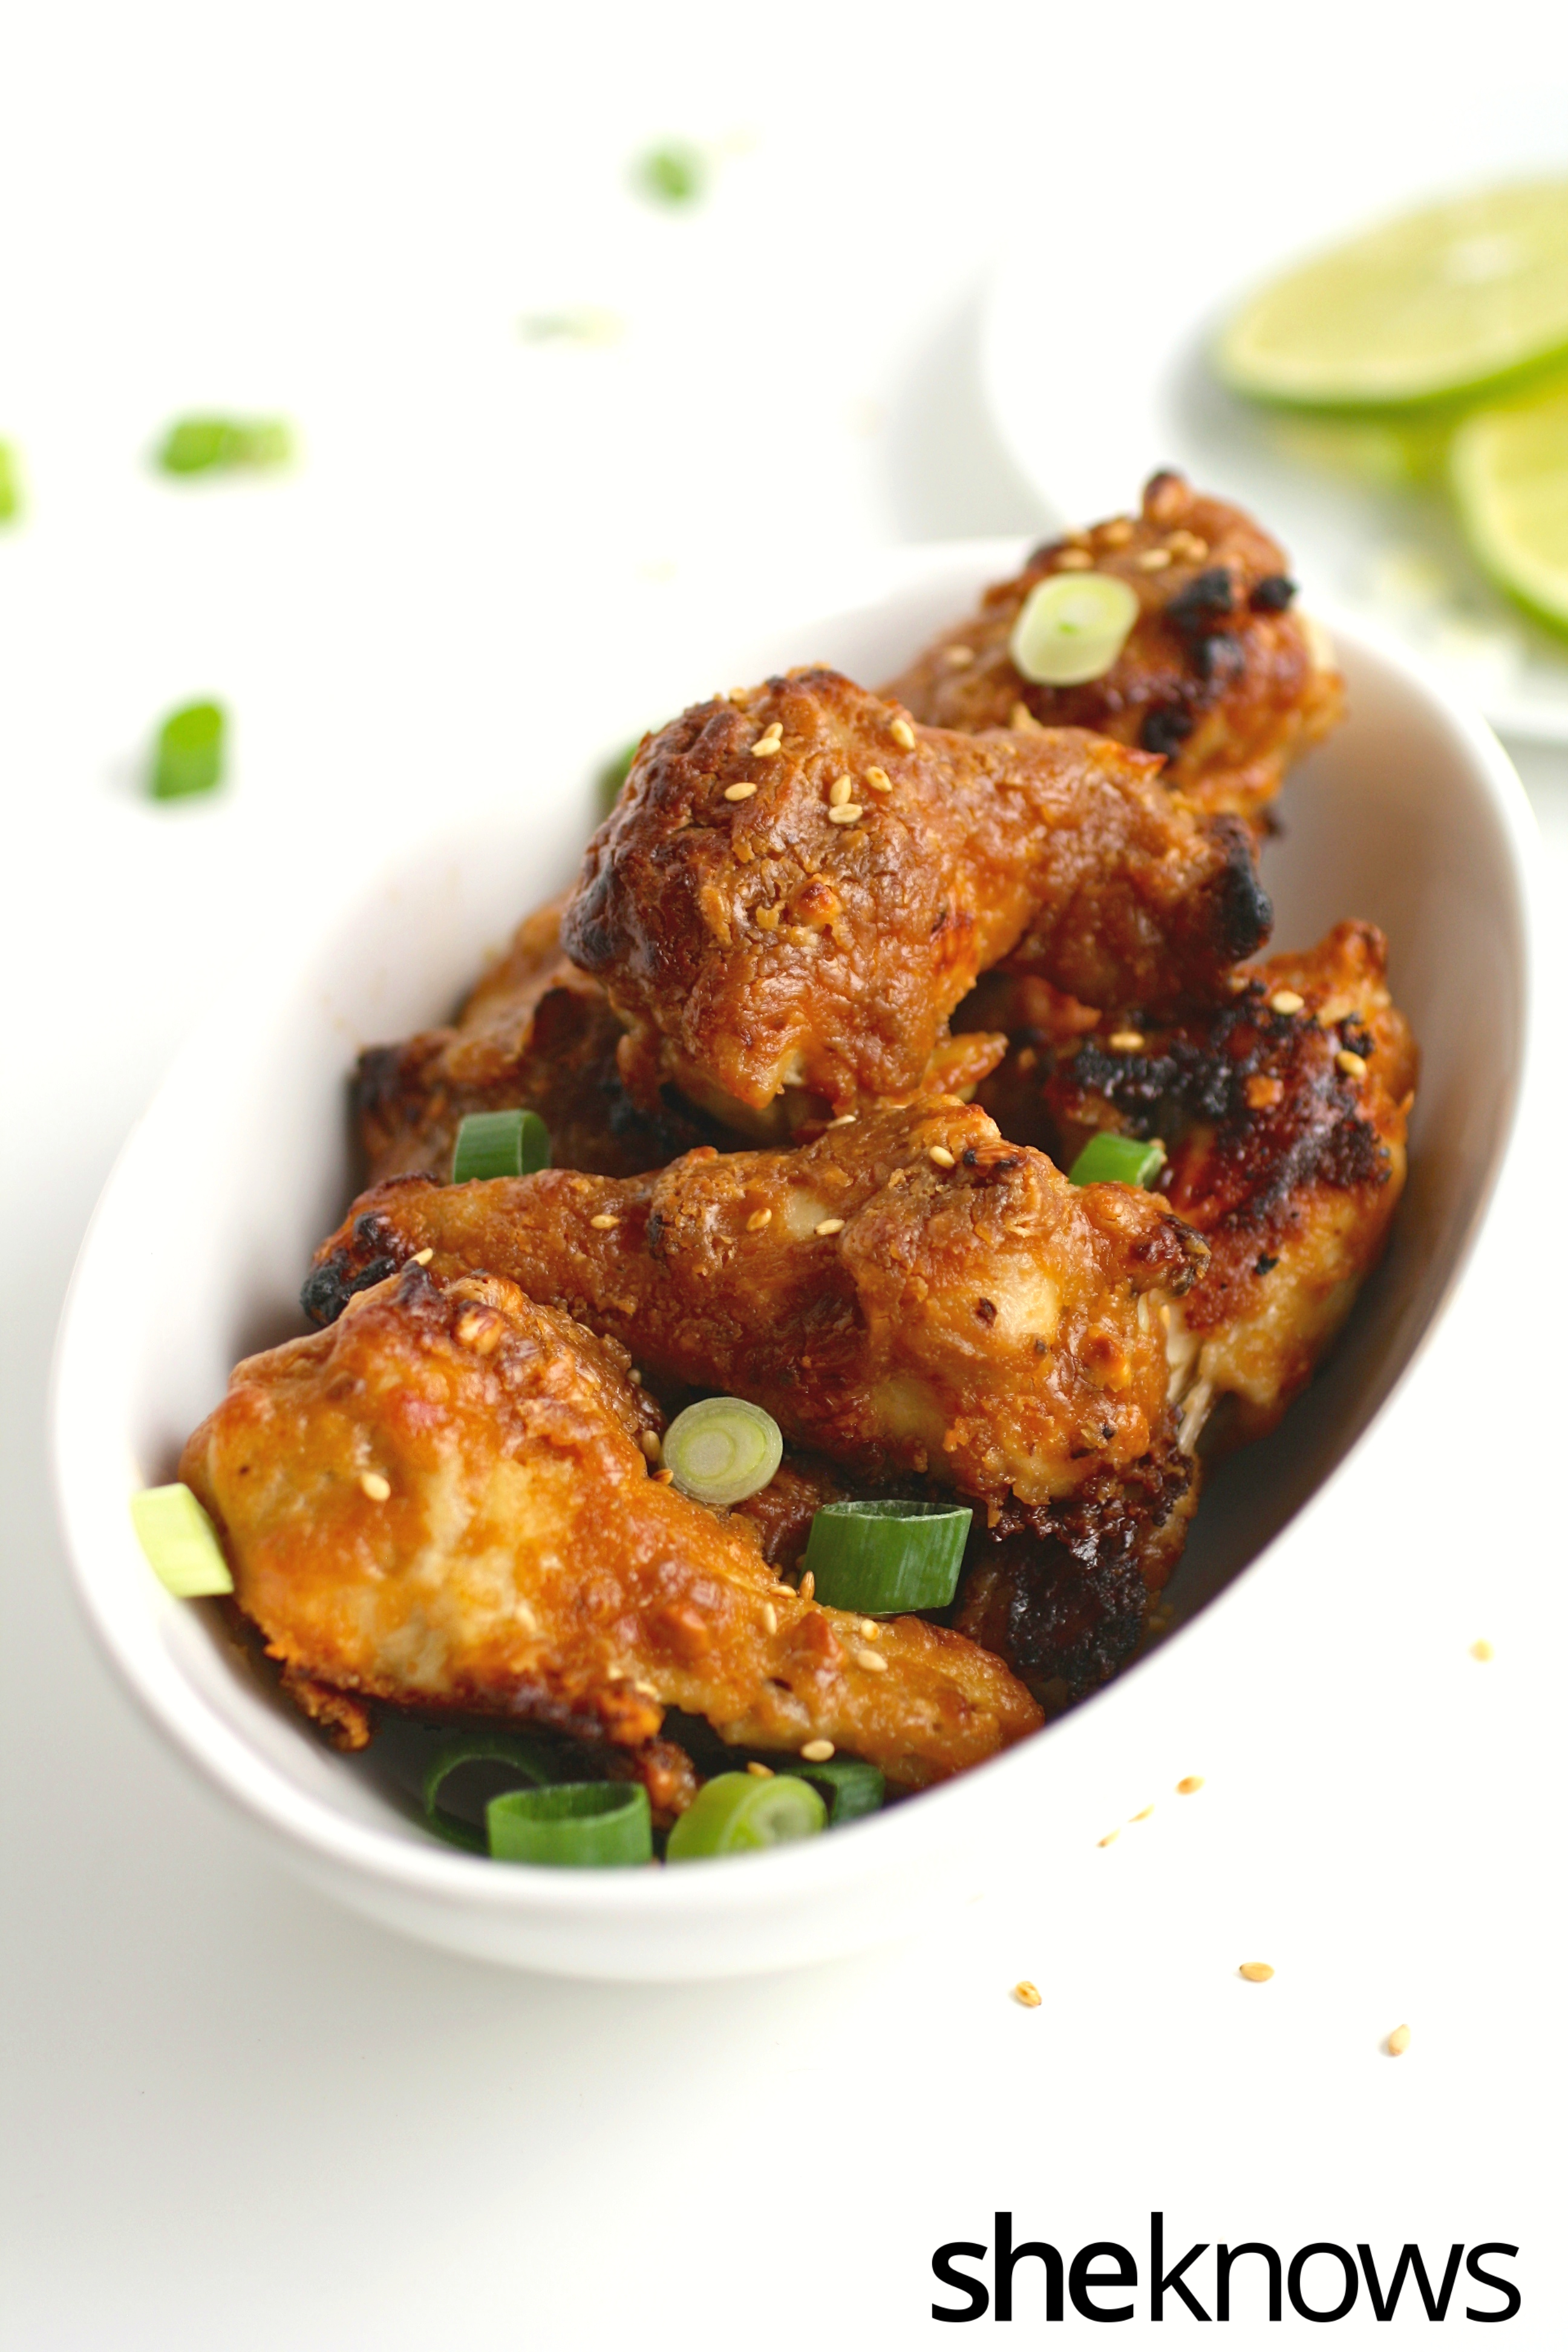 Get your game on with these peanutty Thai-inspired, baked chicken wings